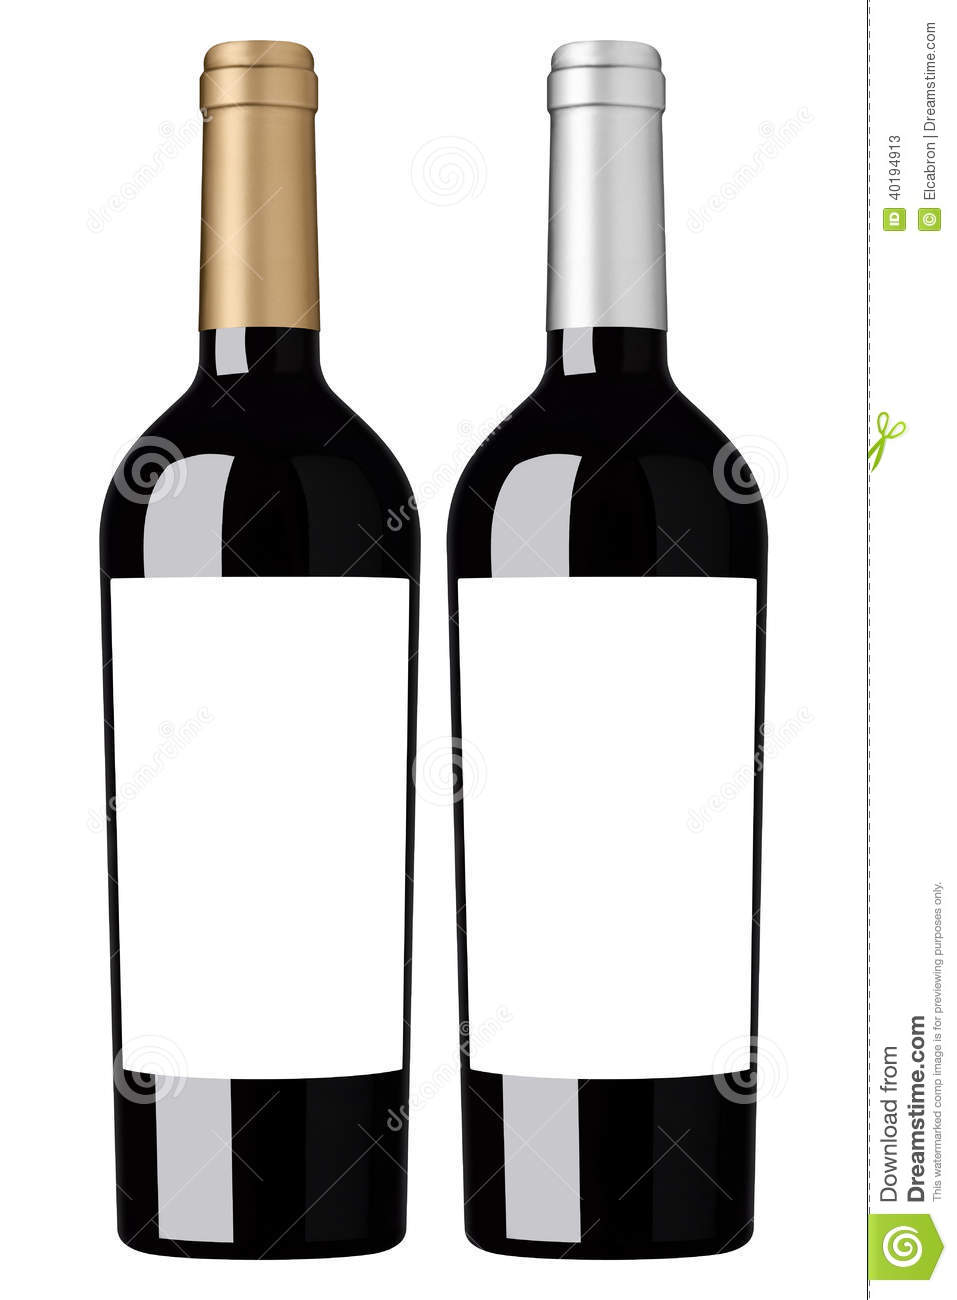 Red wine blank bottle with labels ready for branding.